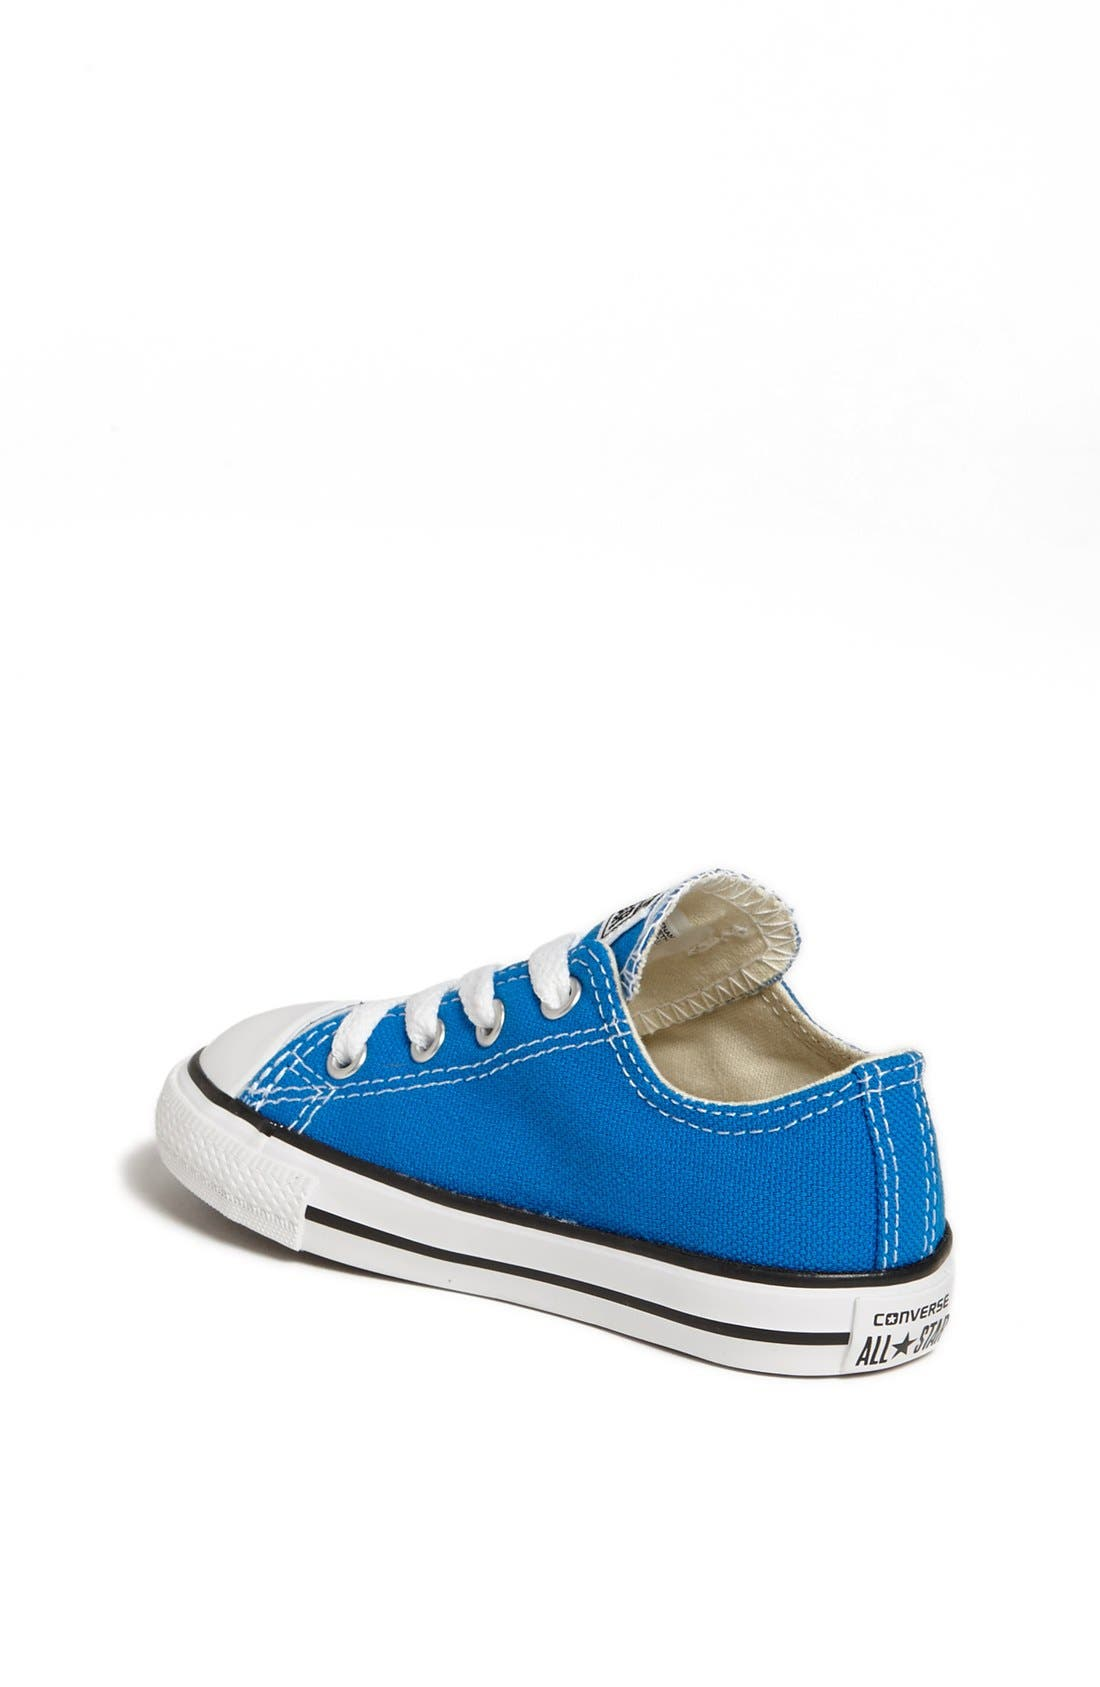 Alternate Image 2  - Converse Chuck Taylor® All Star® Low Top Sneaker (Baby, Walker & Toddler)